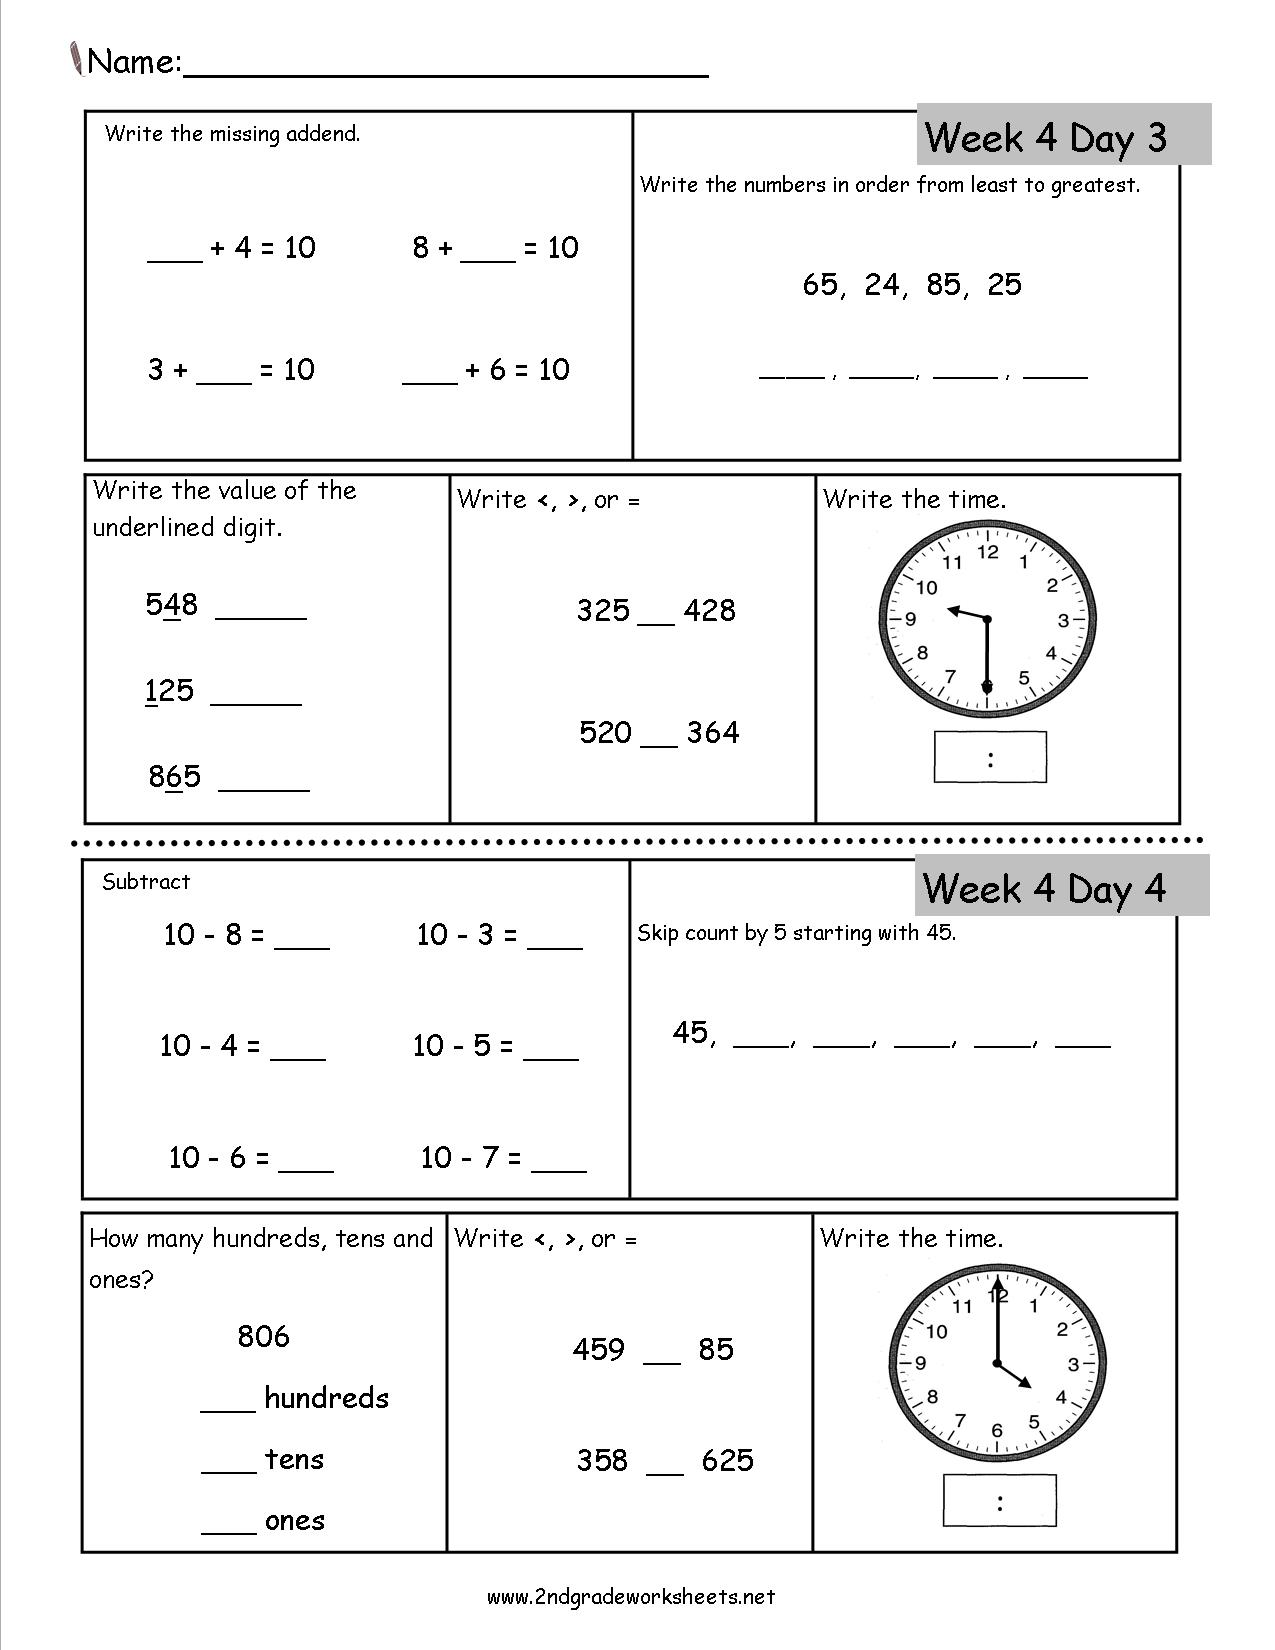 Free 2nd Grade Daily Math Worksheets – 1st and 2nd Grade Math Worksheets